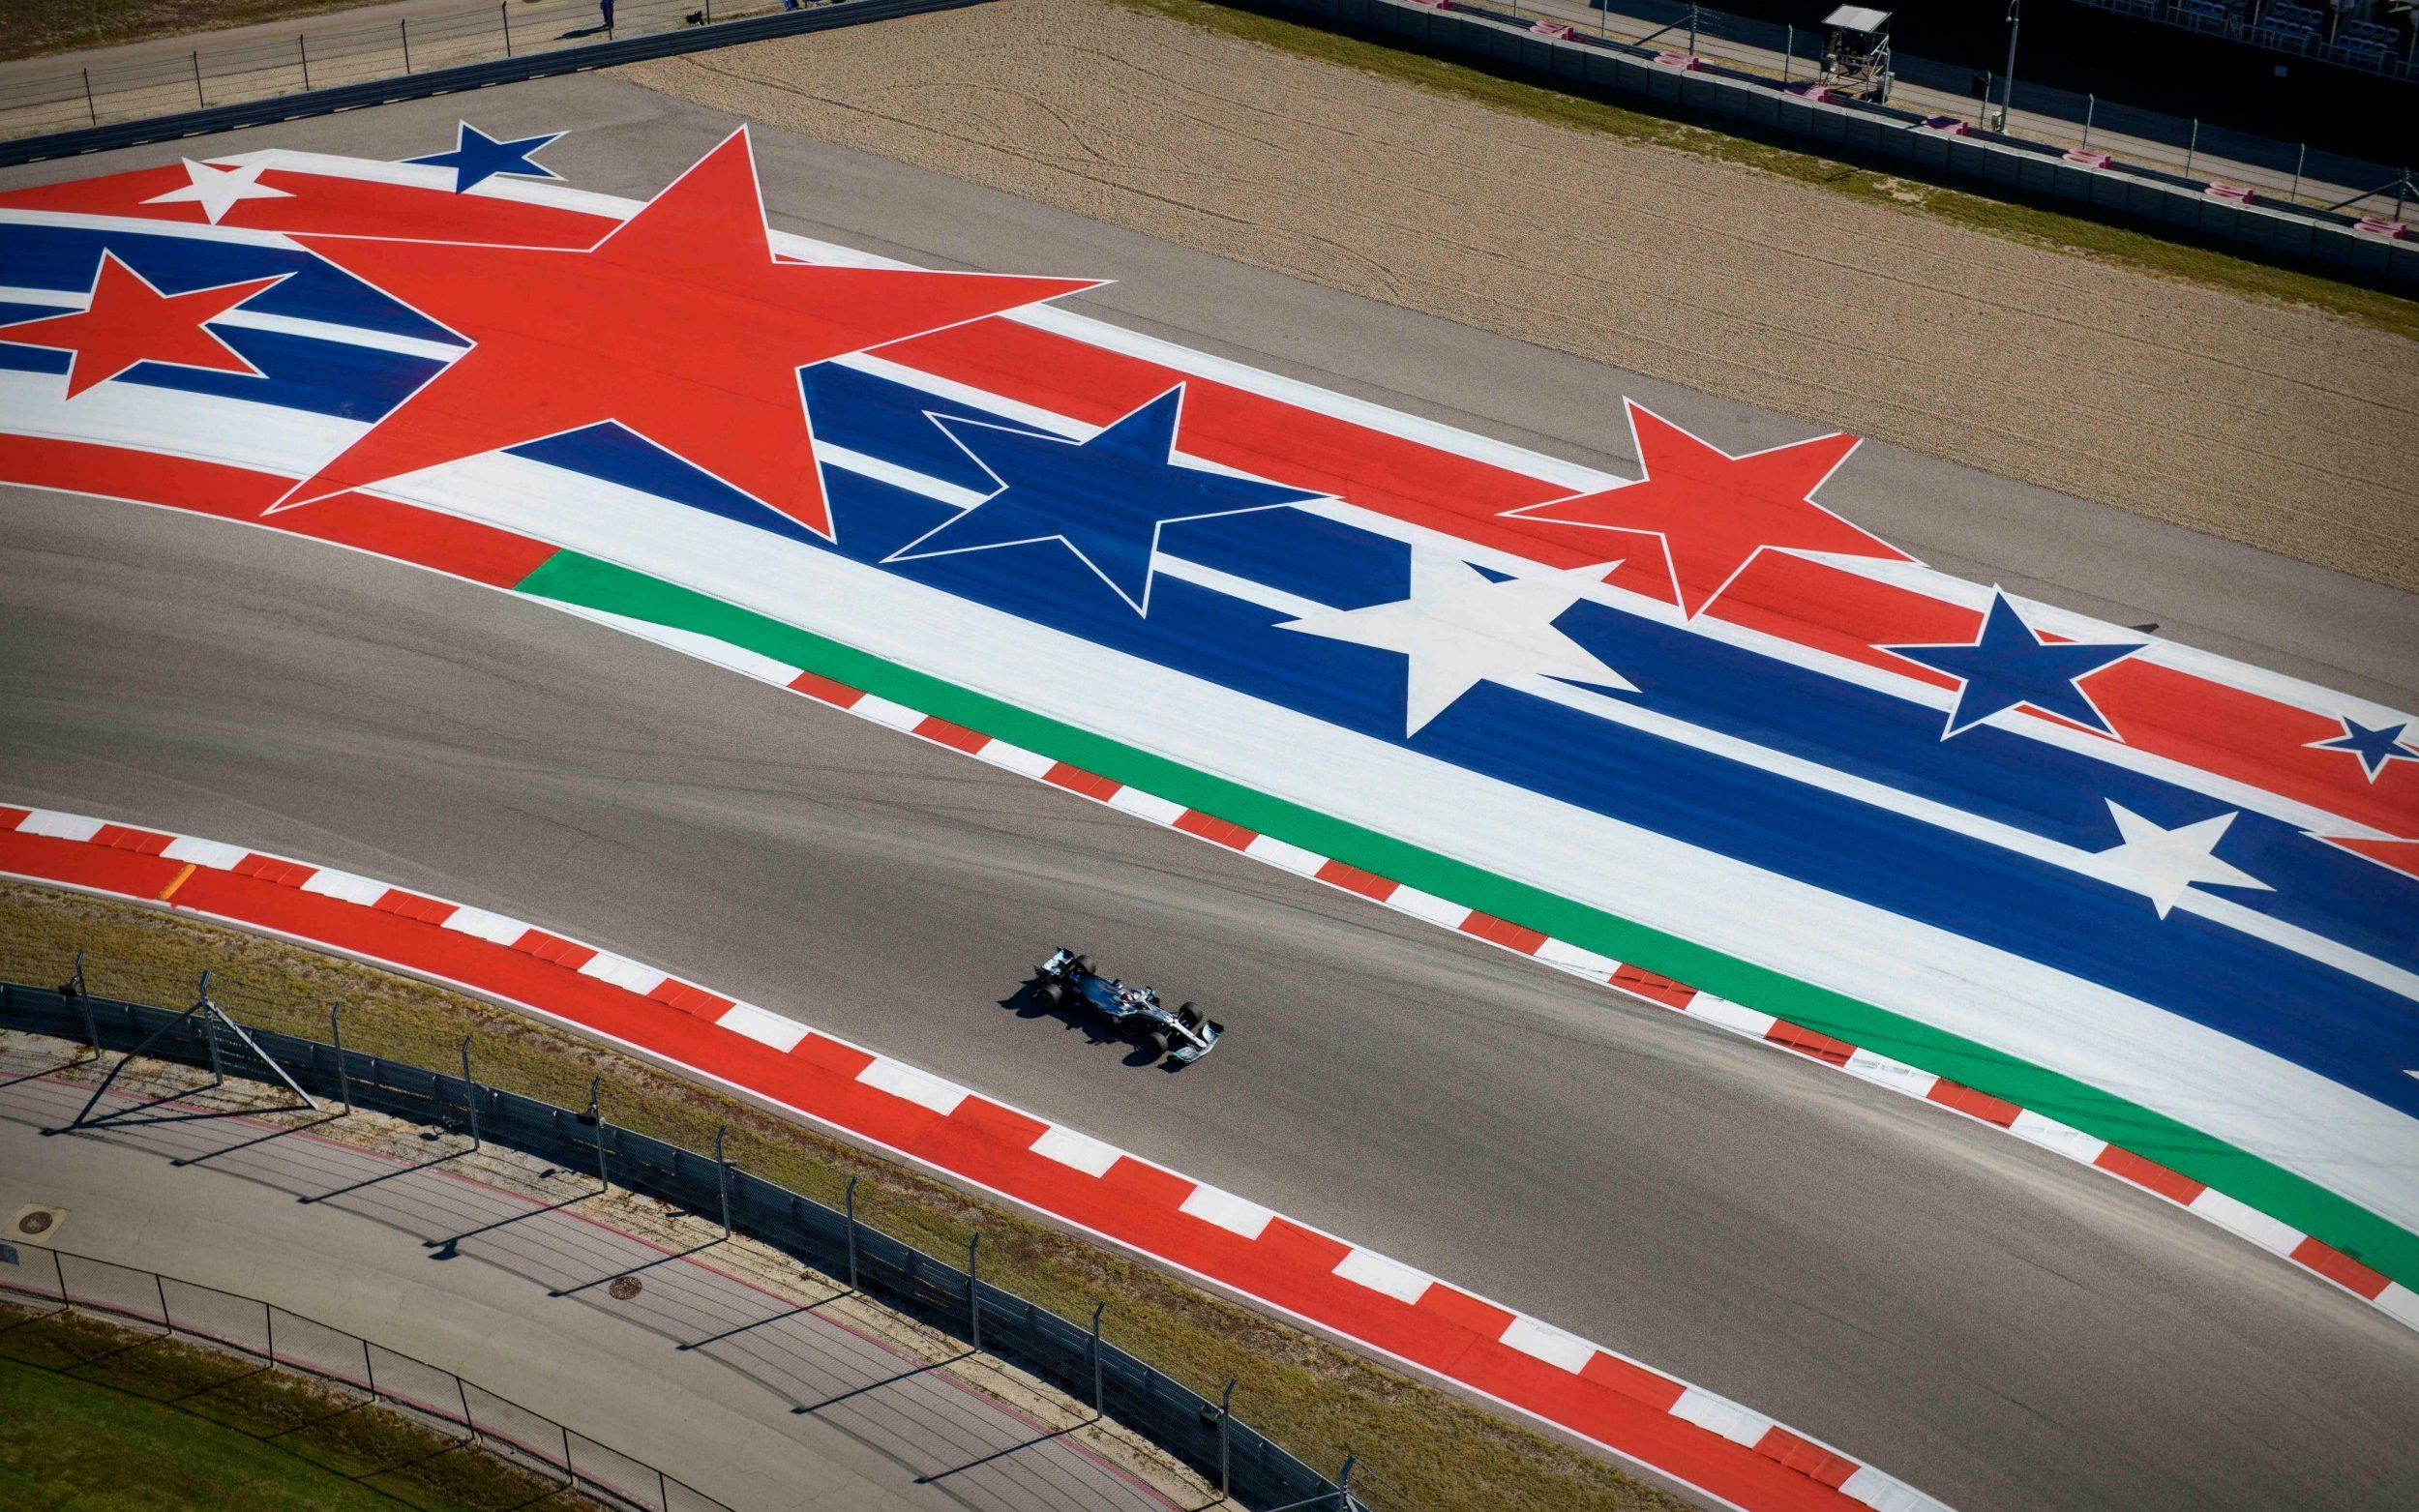 United States Grand Prix 2021: What time is the F1 race, what TV channel is it on and what are the odds?